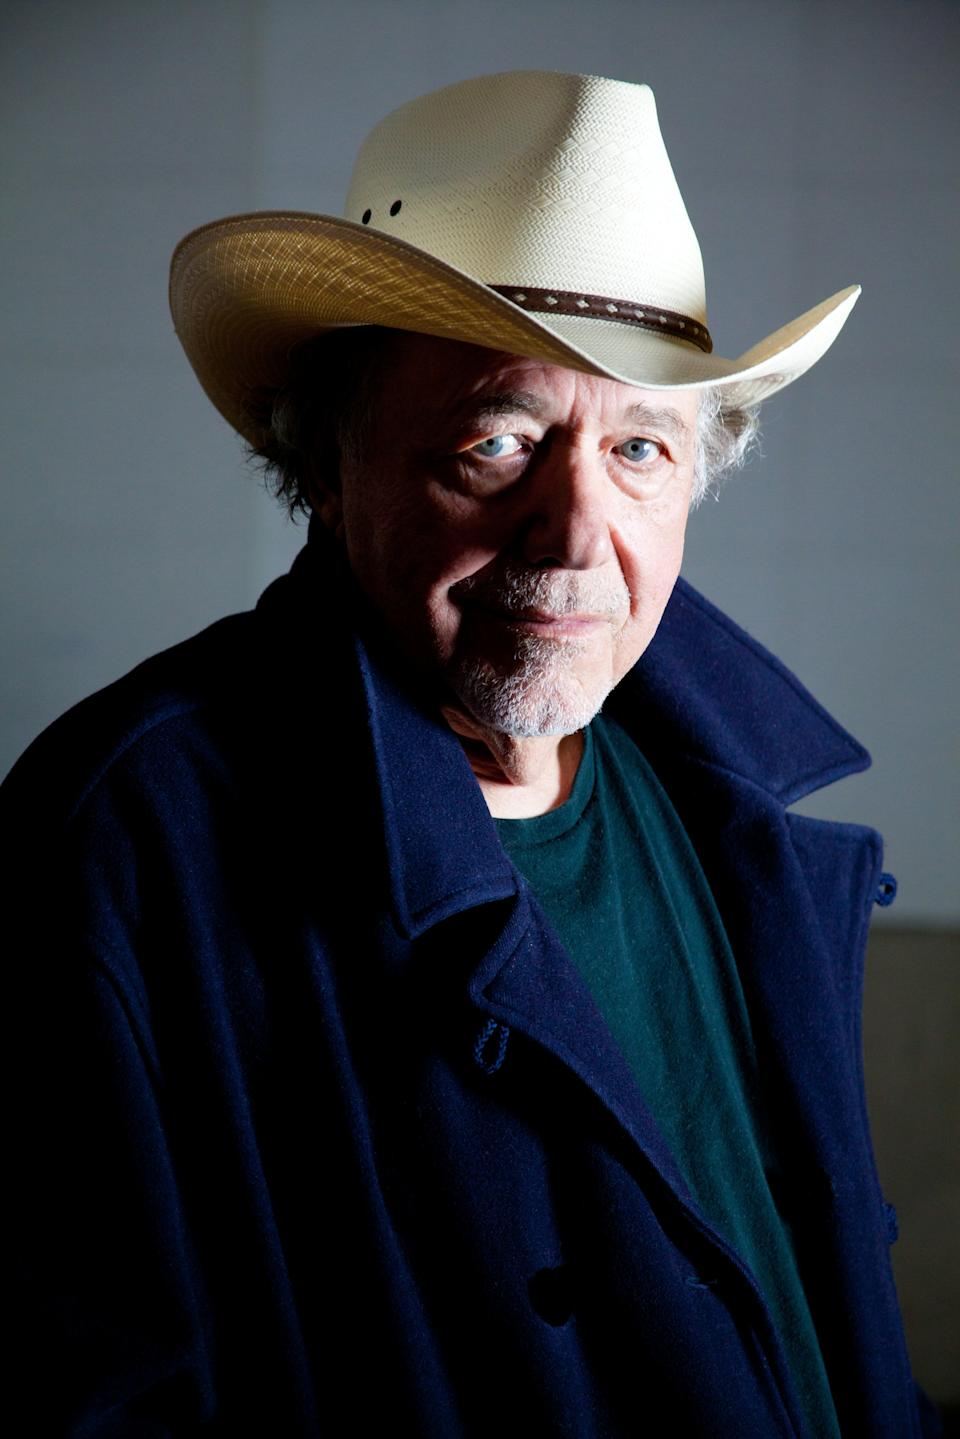 "This undated image released by Plowboy Records shows musician Bobby Bare. Bare's latest album is ""Darker Than Light,"" a collaboration of Bare's favorite folks songs, including works by Bob Dylan, Lead Belly and Woody Guthrie.  (AP Photo/Plowboy Records)"